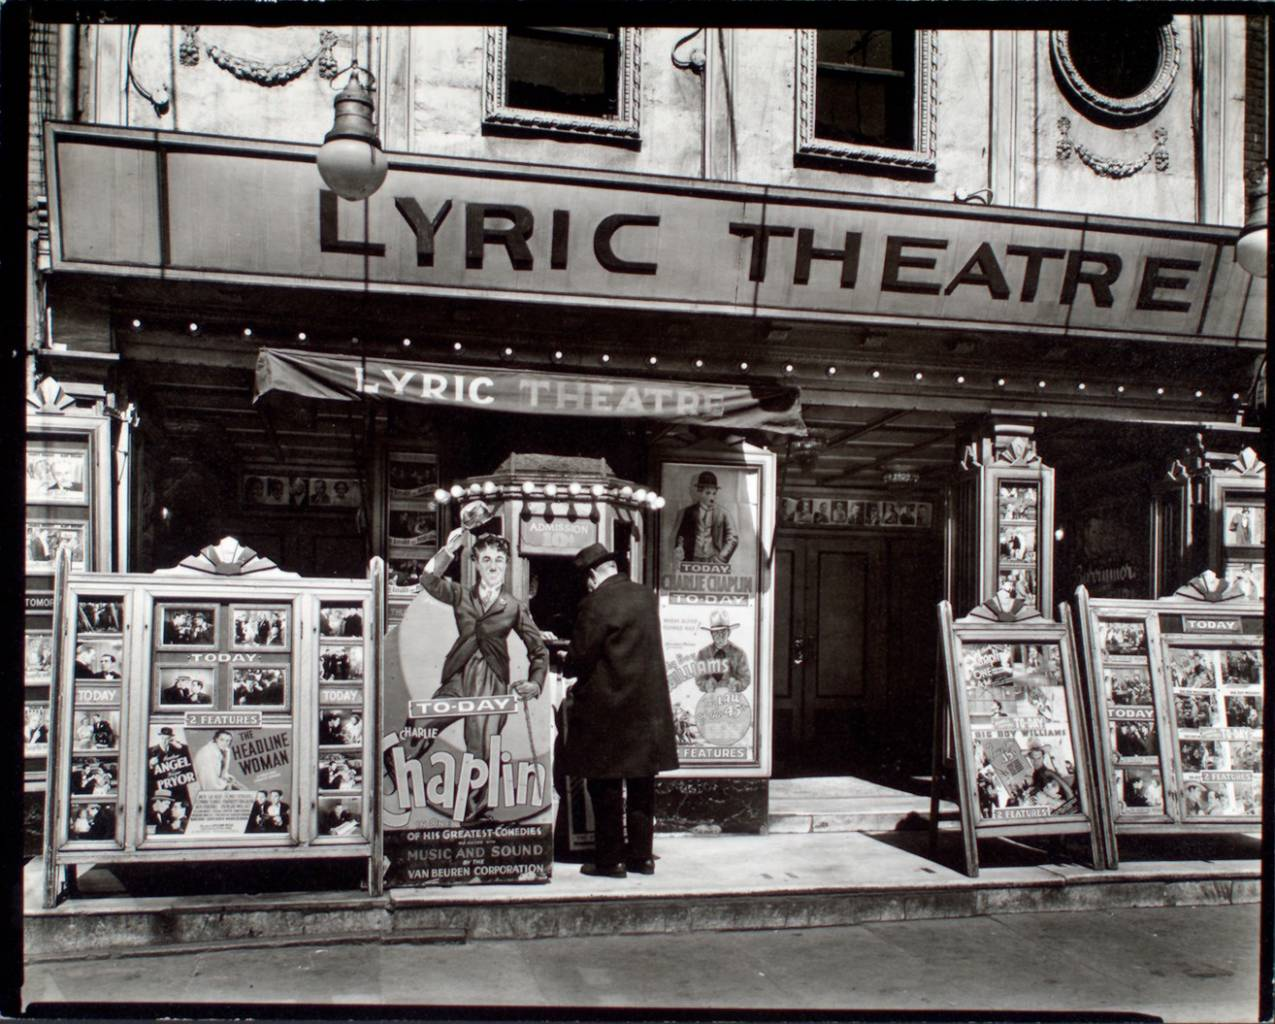 Lyric Theatre, Third Avenue between 12th and 13th street, Manhattan